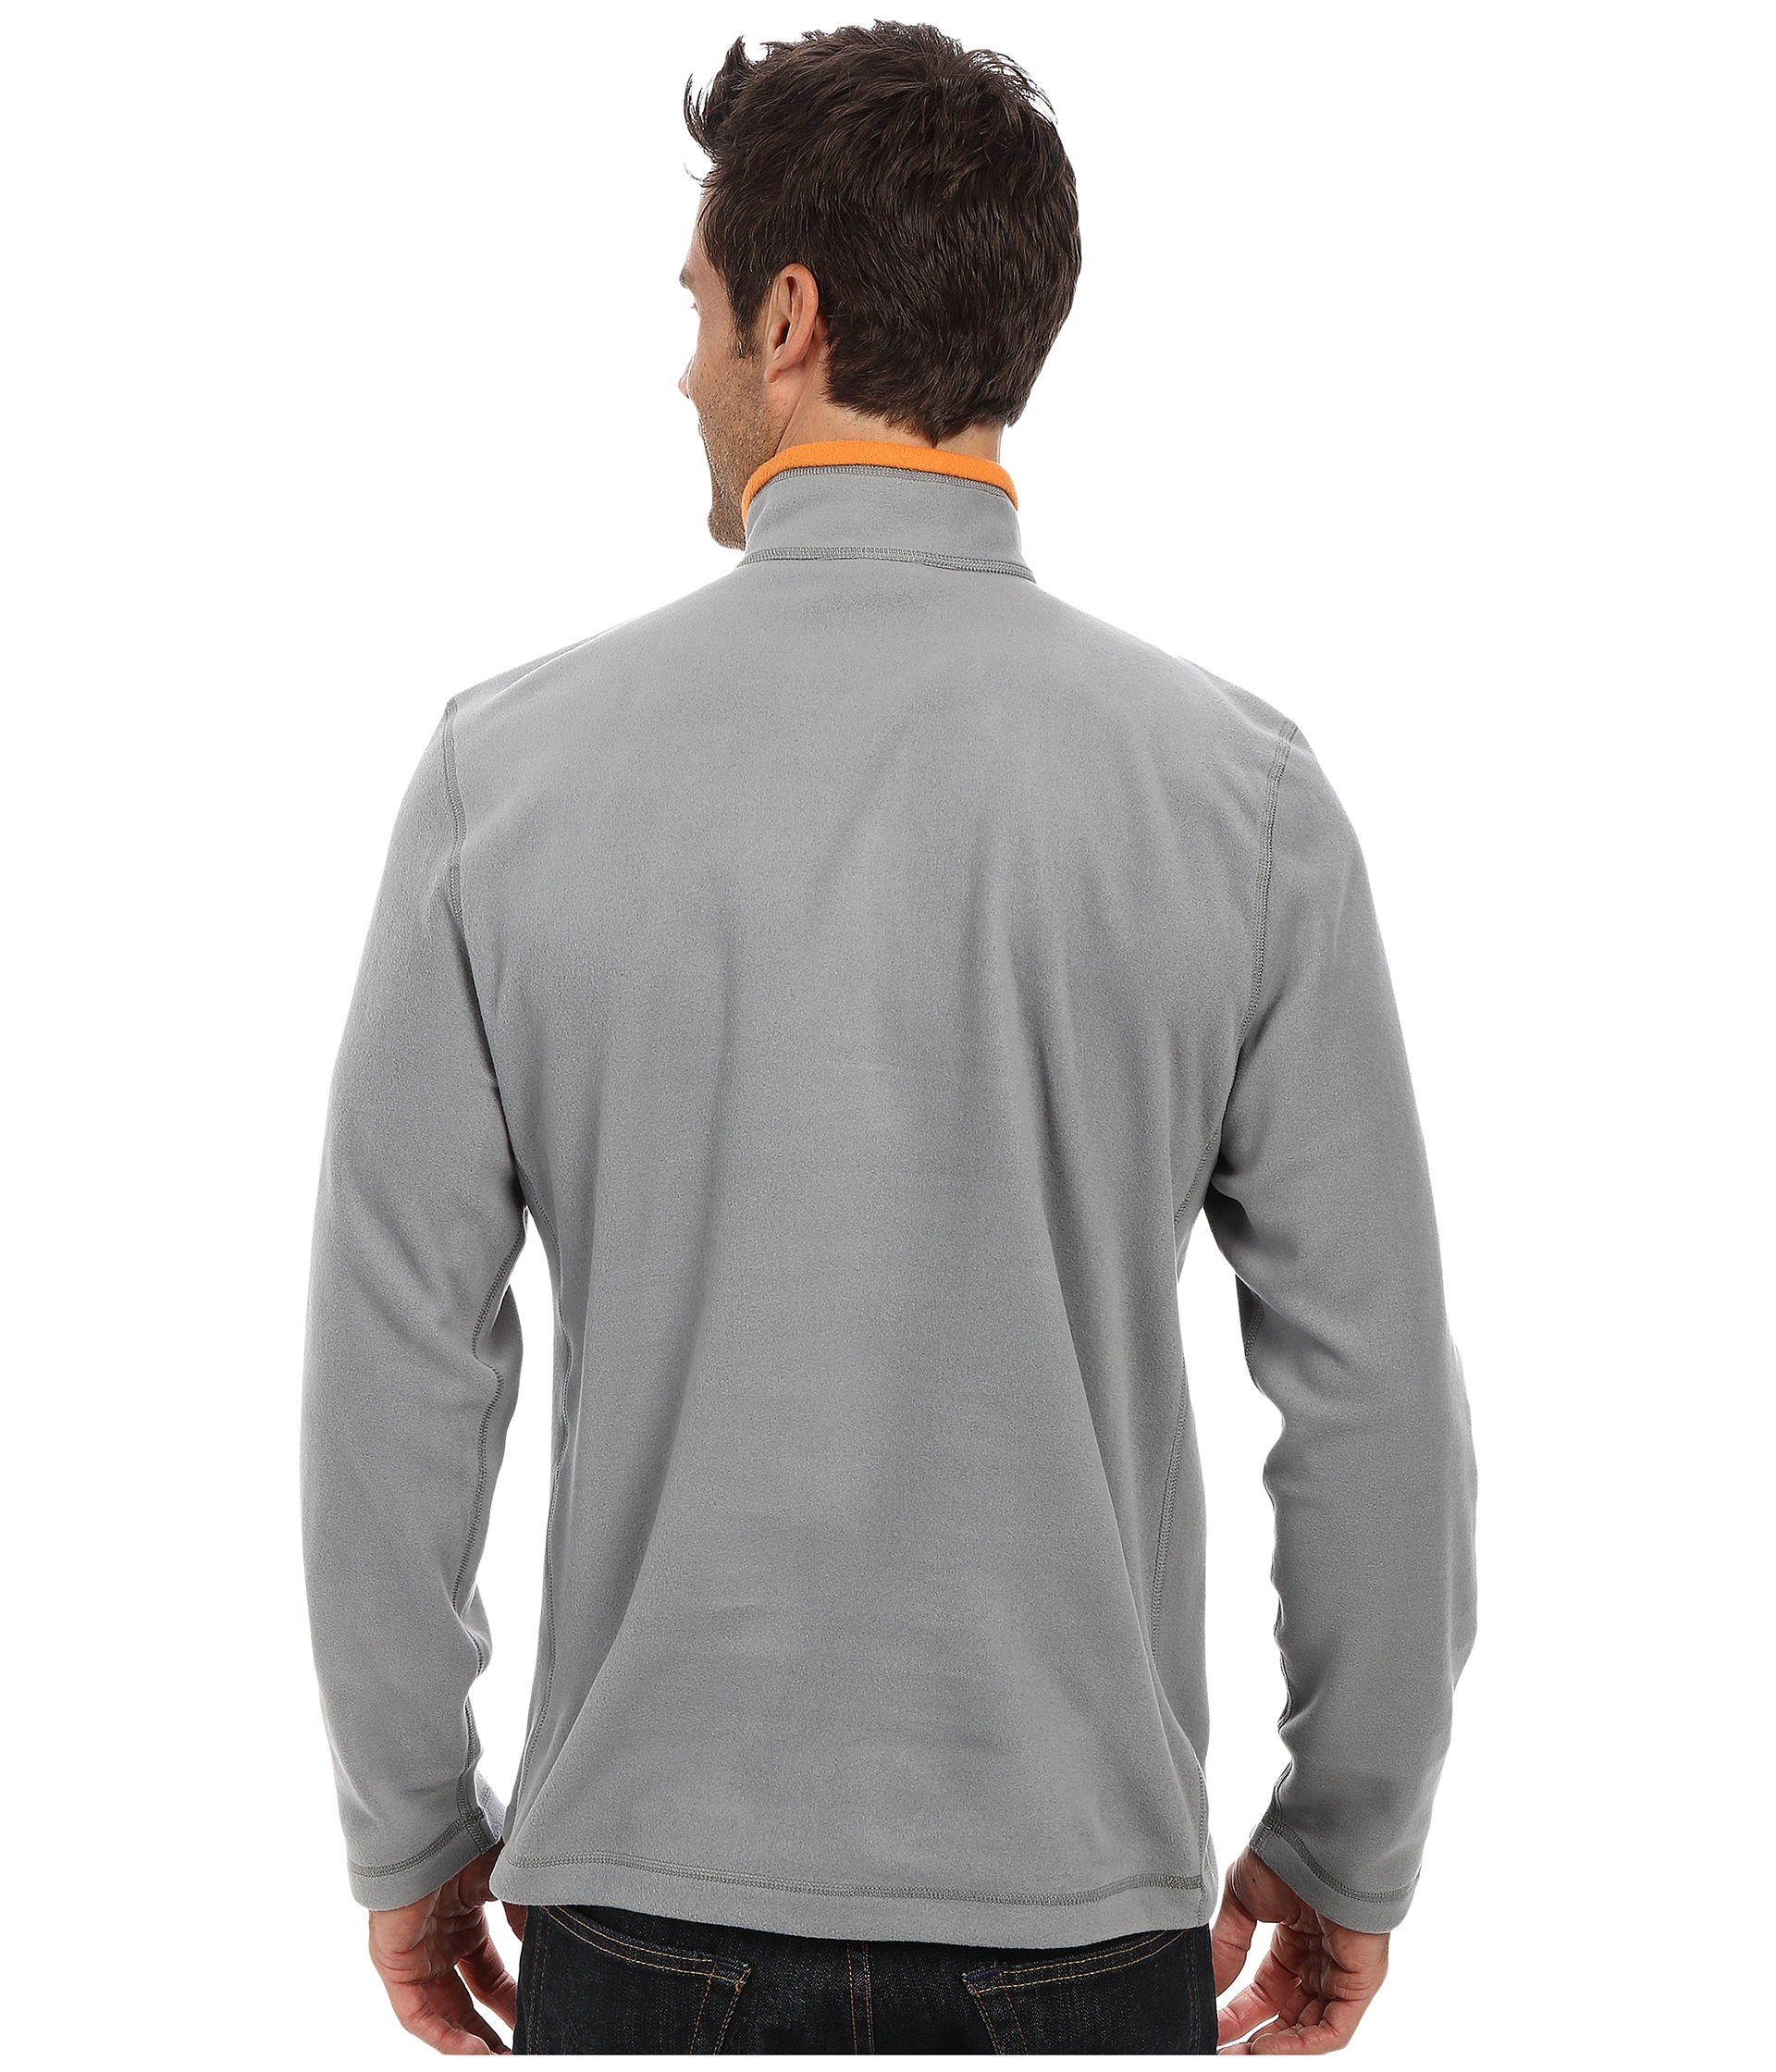 d56c1b0f6f5a Lyst - The North Face Tka 100 Glacier 1 4 Zip in Gray for Men